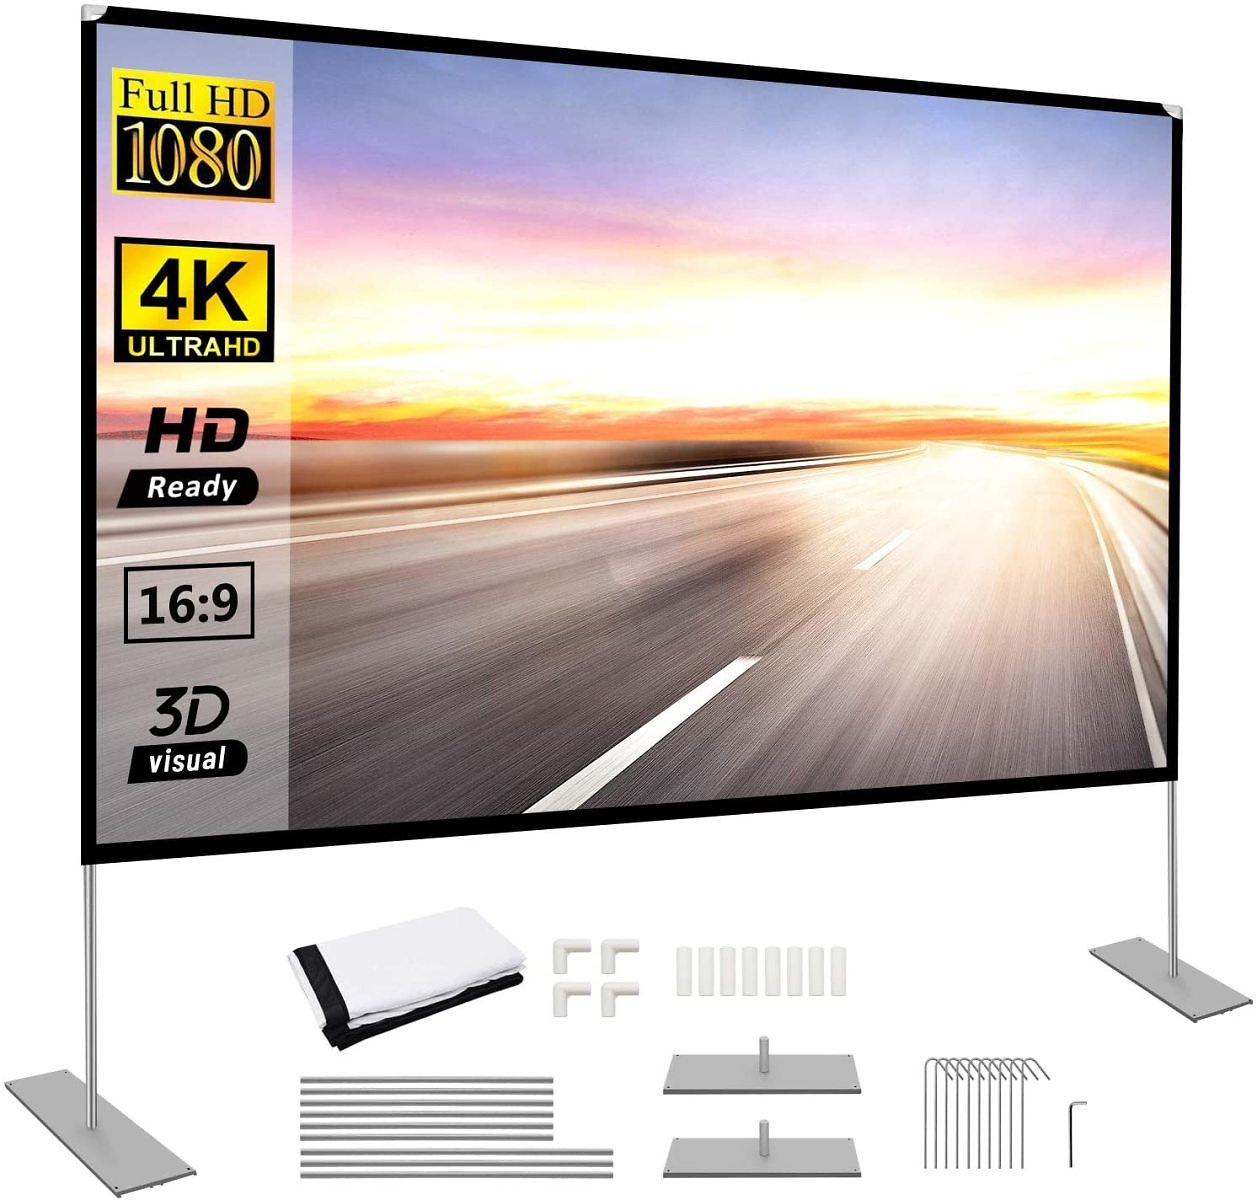 Projector Screen with Stand 100 Inch Portable Projection Screen 16:9 4K HD Rear Front Projections Movies Screen for Indoor Outdo